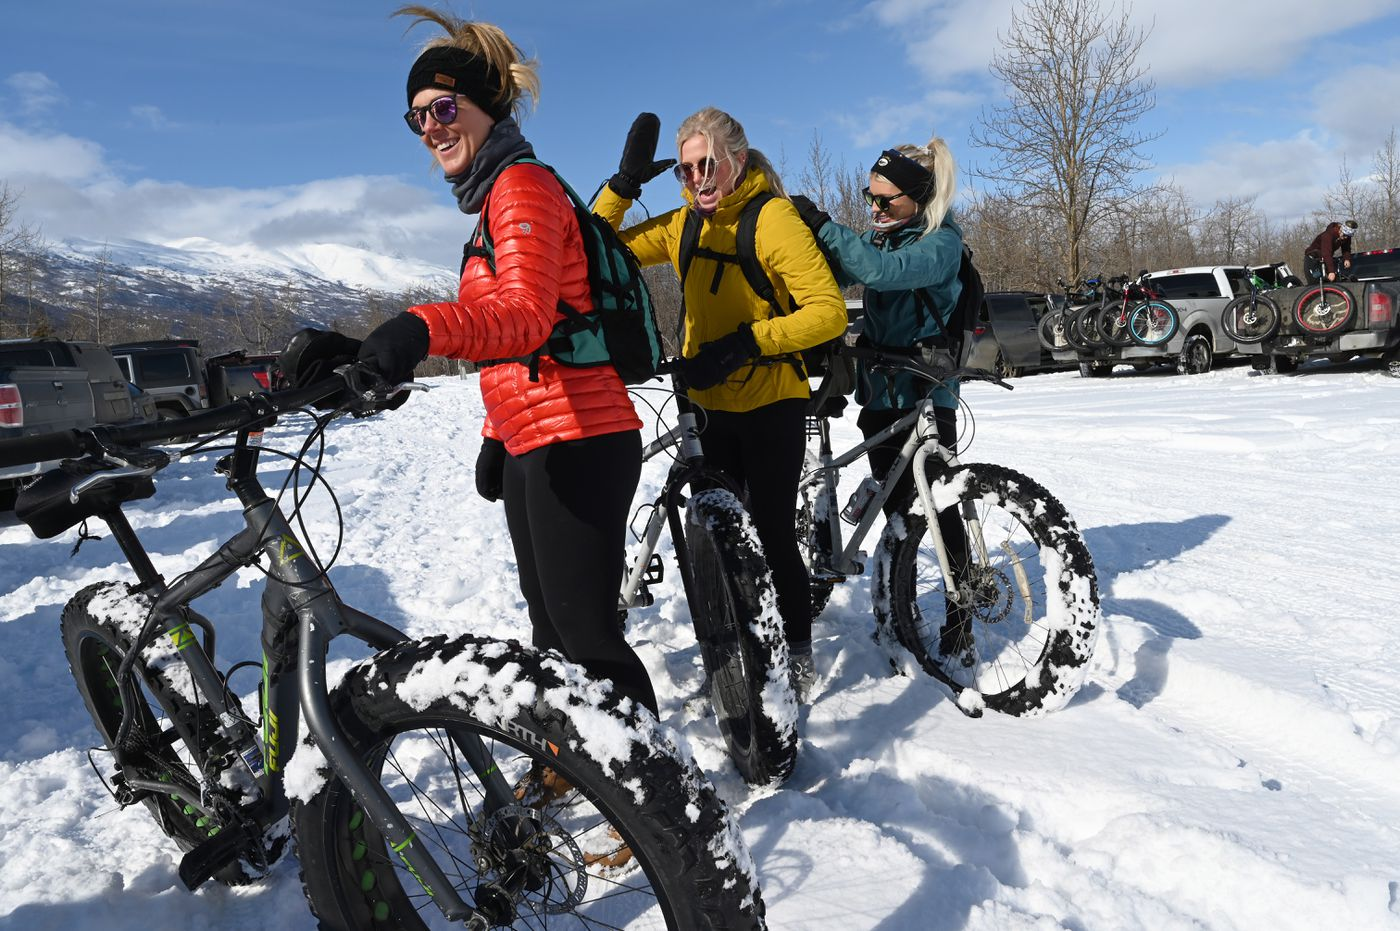 Erika Smith, left, Chelsea Gallagher, middle, and Jackie Housley prepare for their ride to the Knik Glacier in the parking area at Knik Glacier Tours Saturday, March 27, 2021. They were helping each other pack their backpacks. Their friendships began on Instagram. (Anne Raup / ADN)